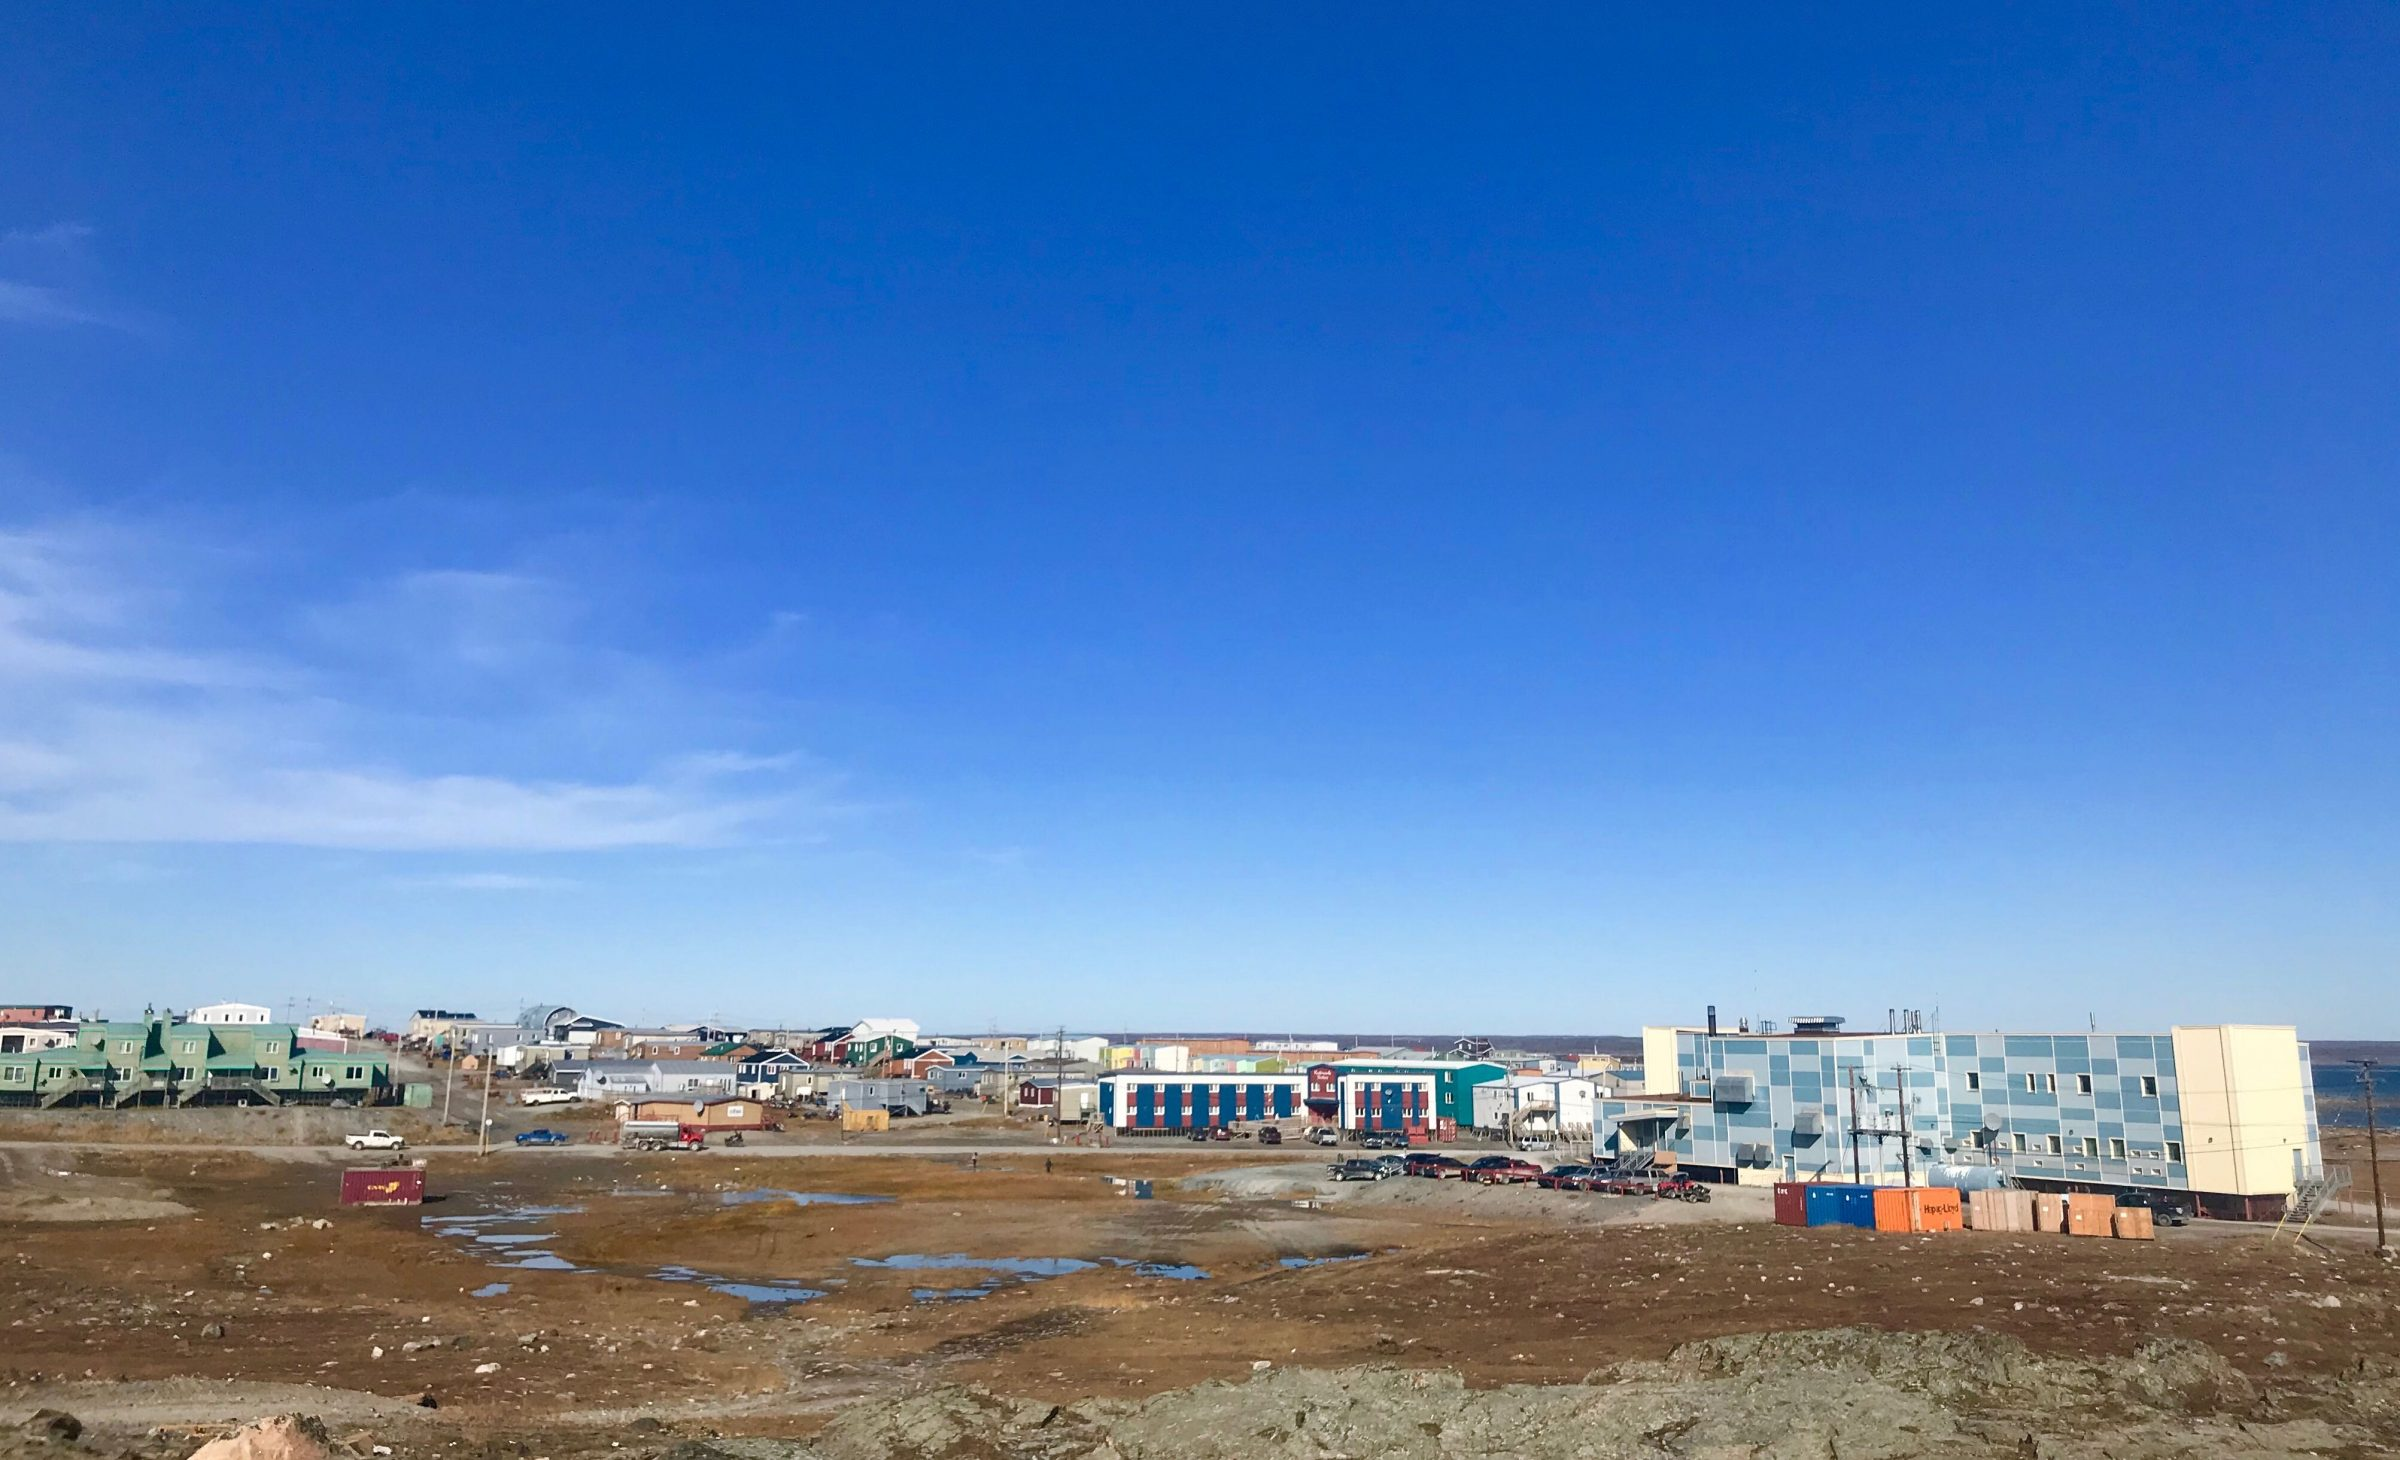 Rankin Inlet police investigate fatal off-road vehicle accident | Nunatsiaq News